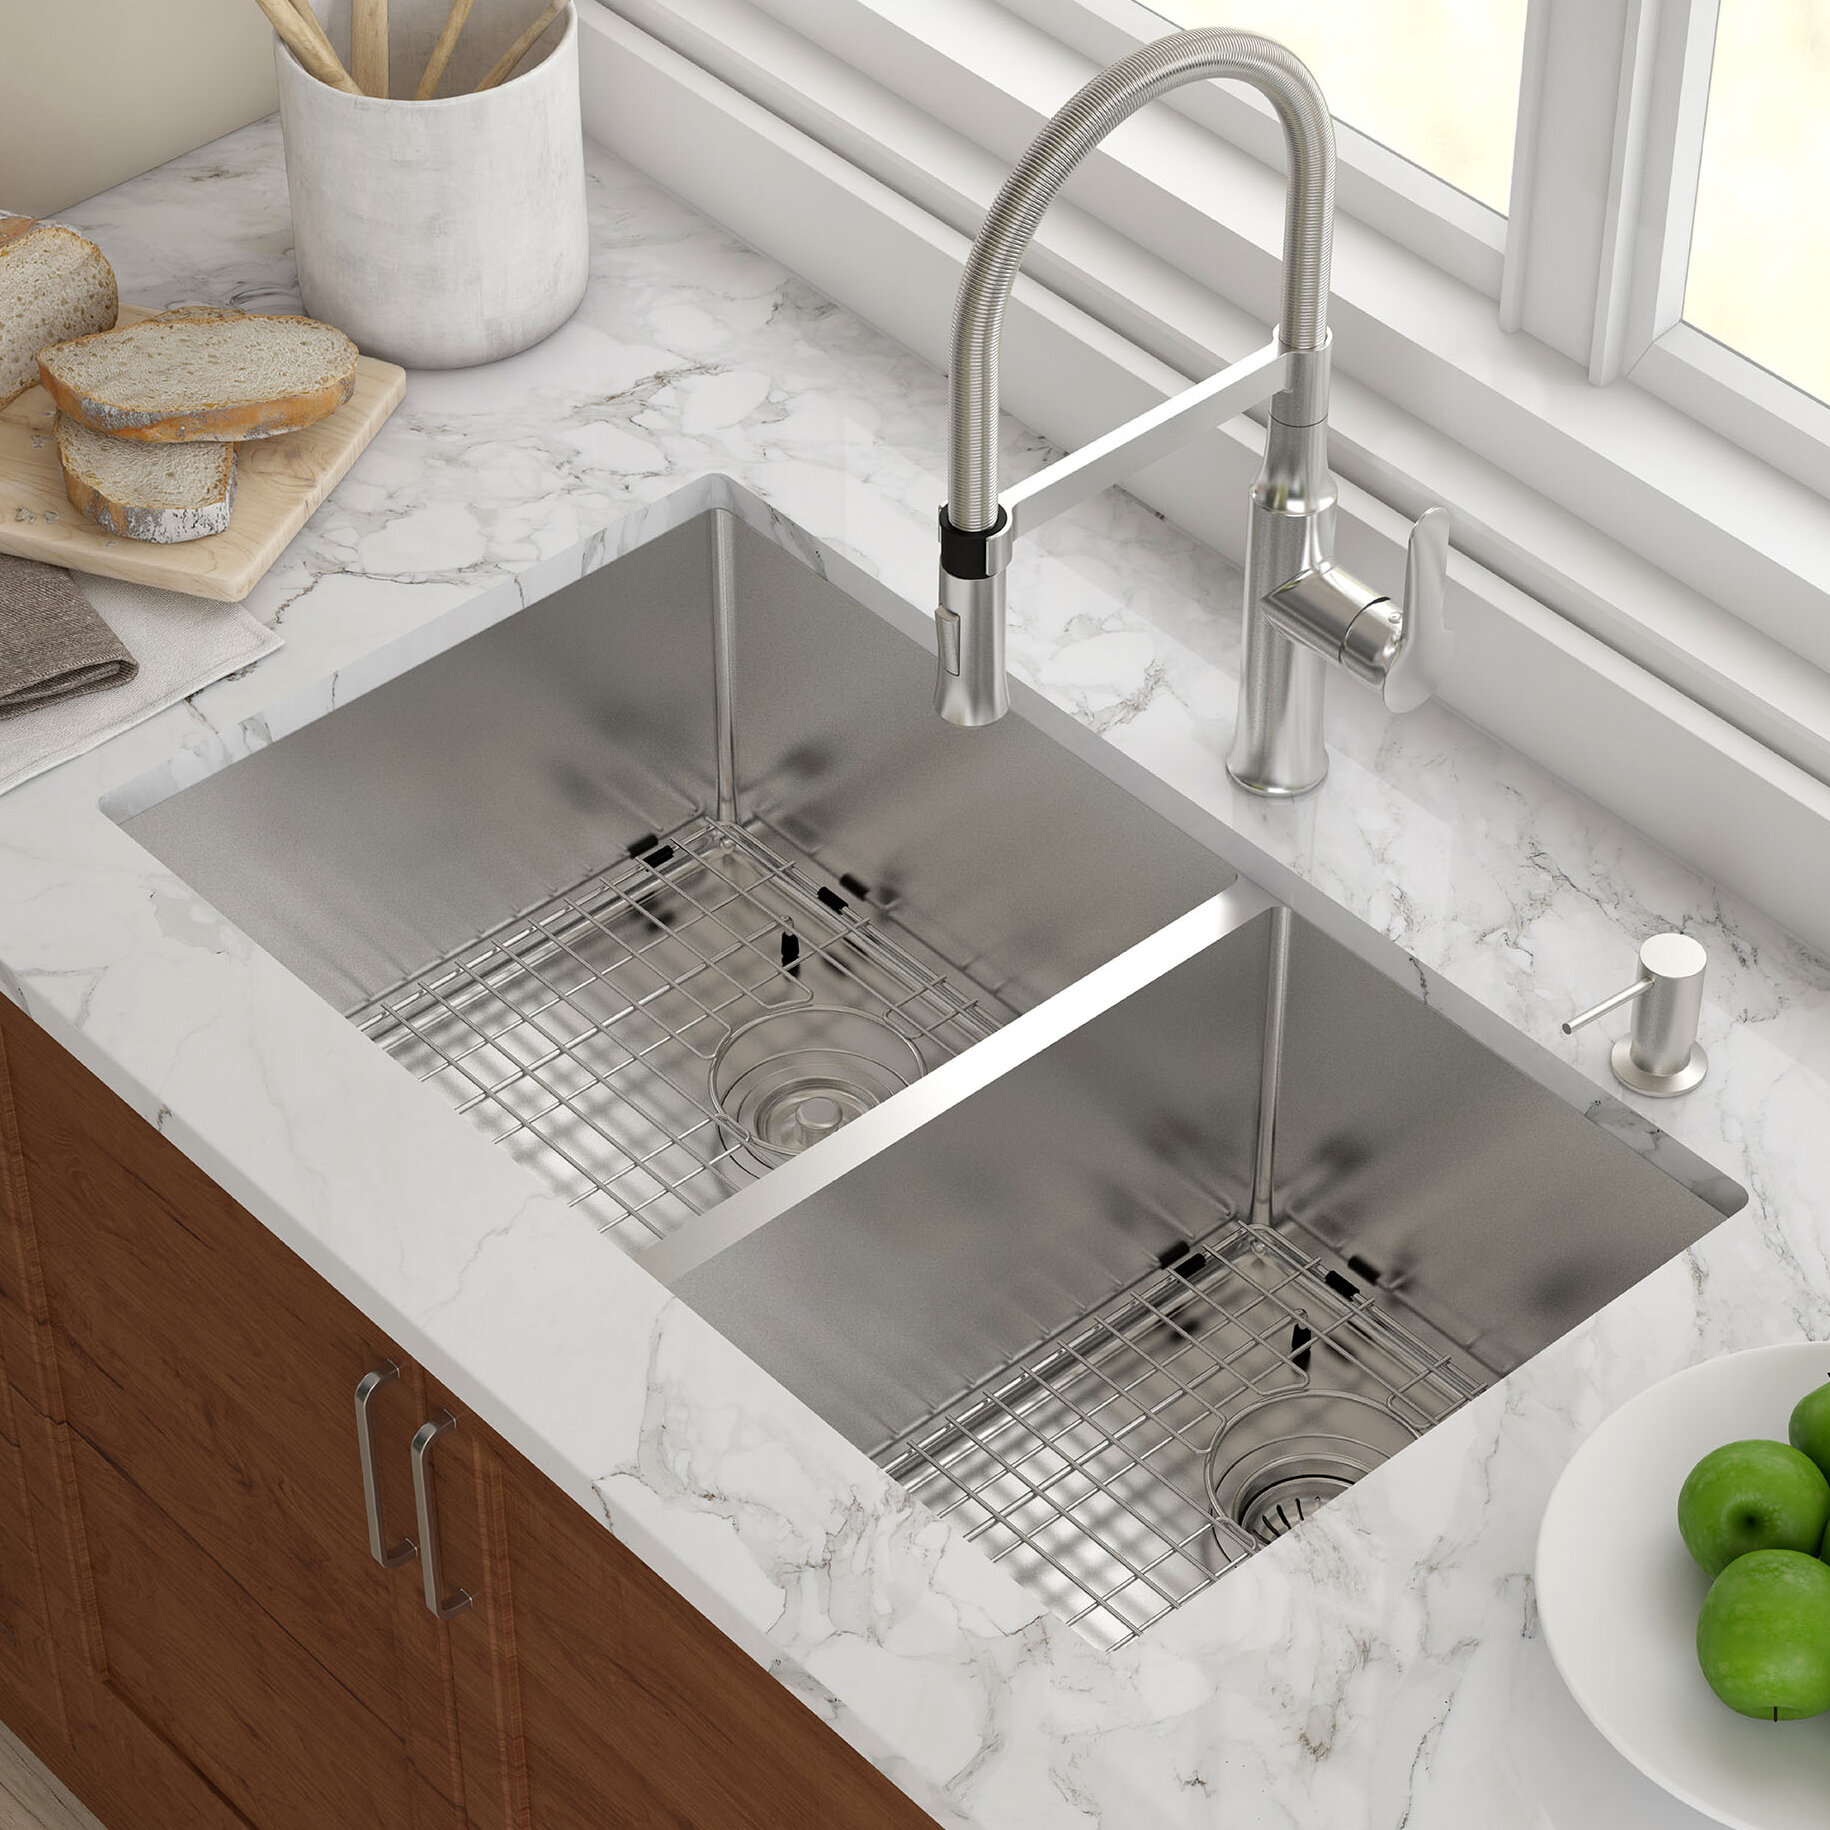 Kraus 33 X 19 Double Basin Undermount Kitchen Sink With Drain Embly Reviews Wayfair